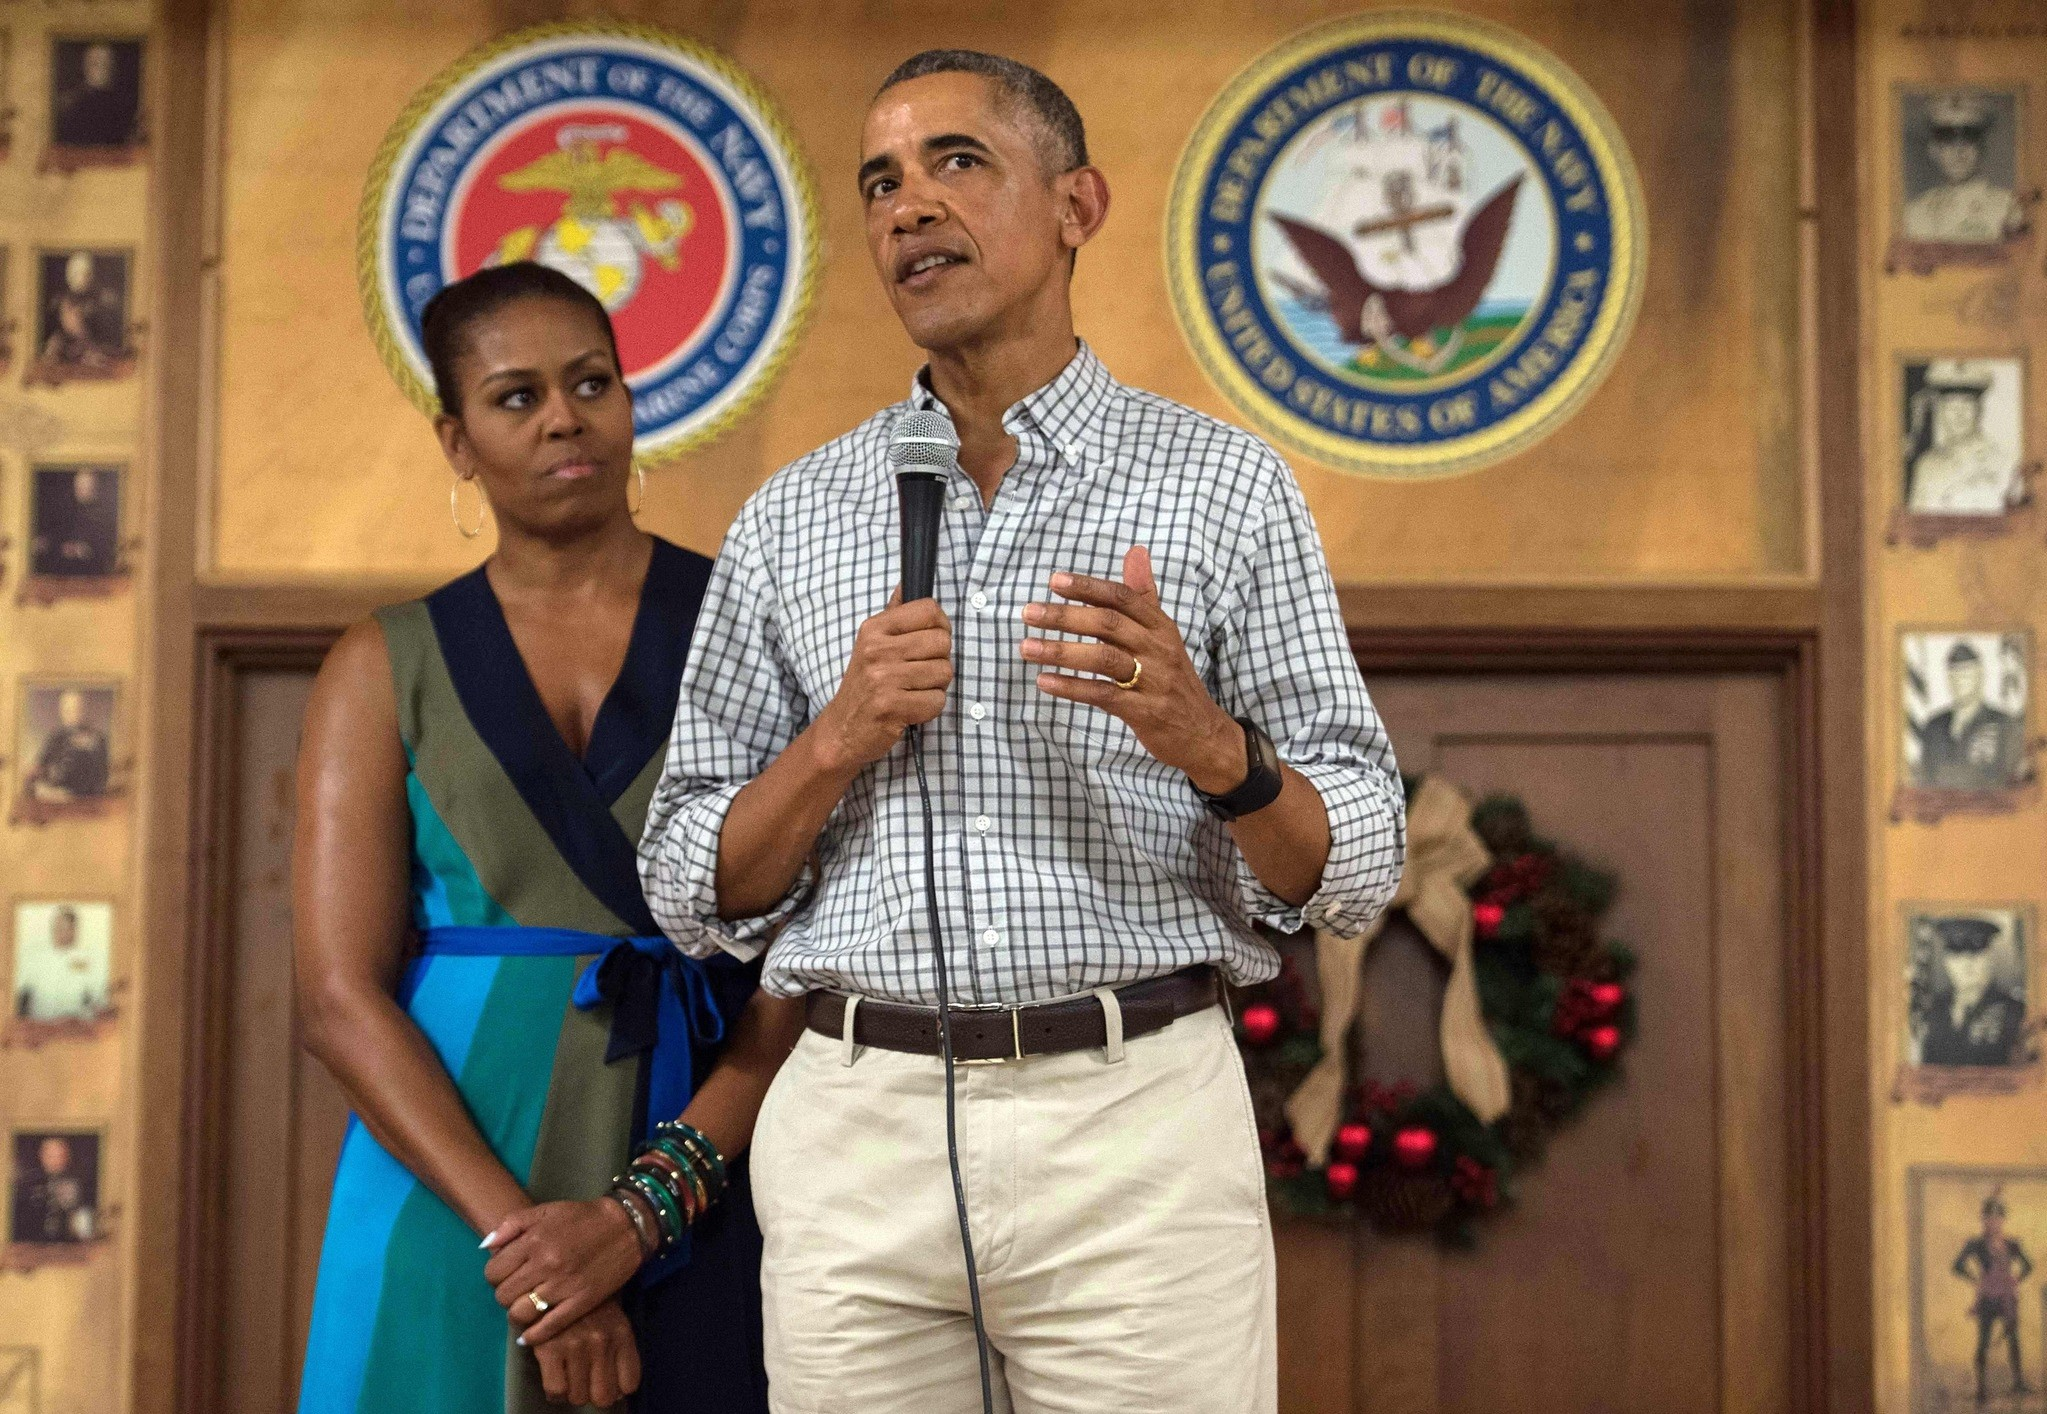 Obama addresses troops with First Lady Michelle Obama at Marine Corps Base Hawaii in Kailua on Dec. 25, 2016. (AFP Photo)